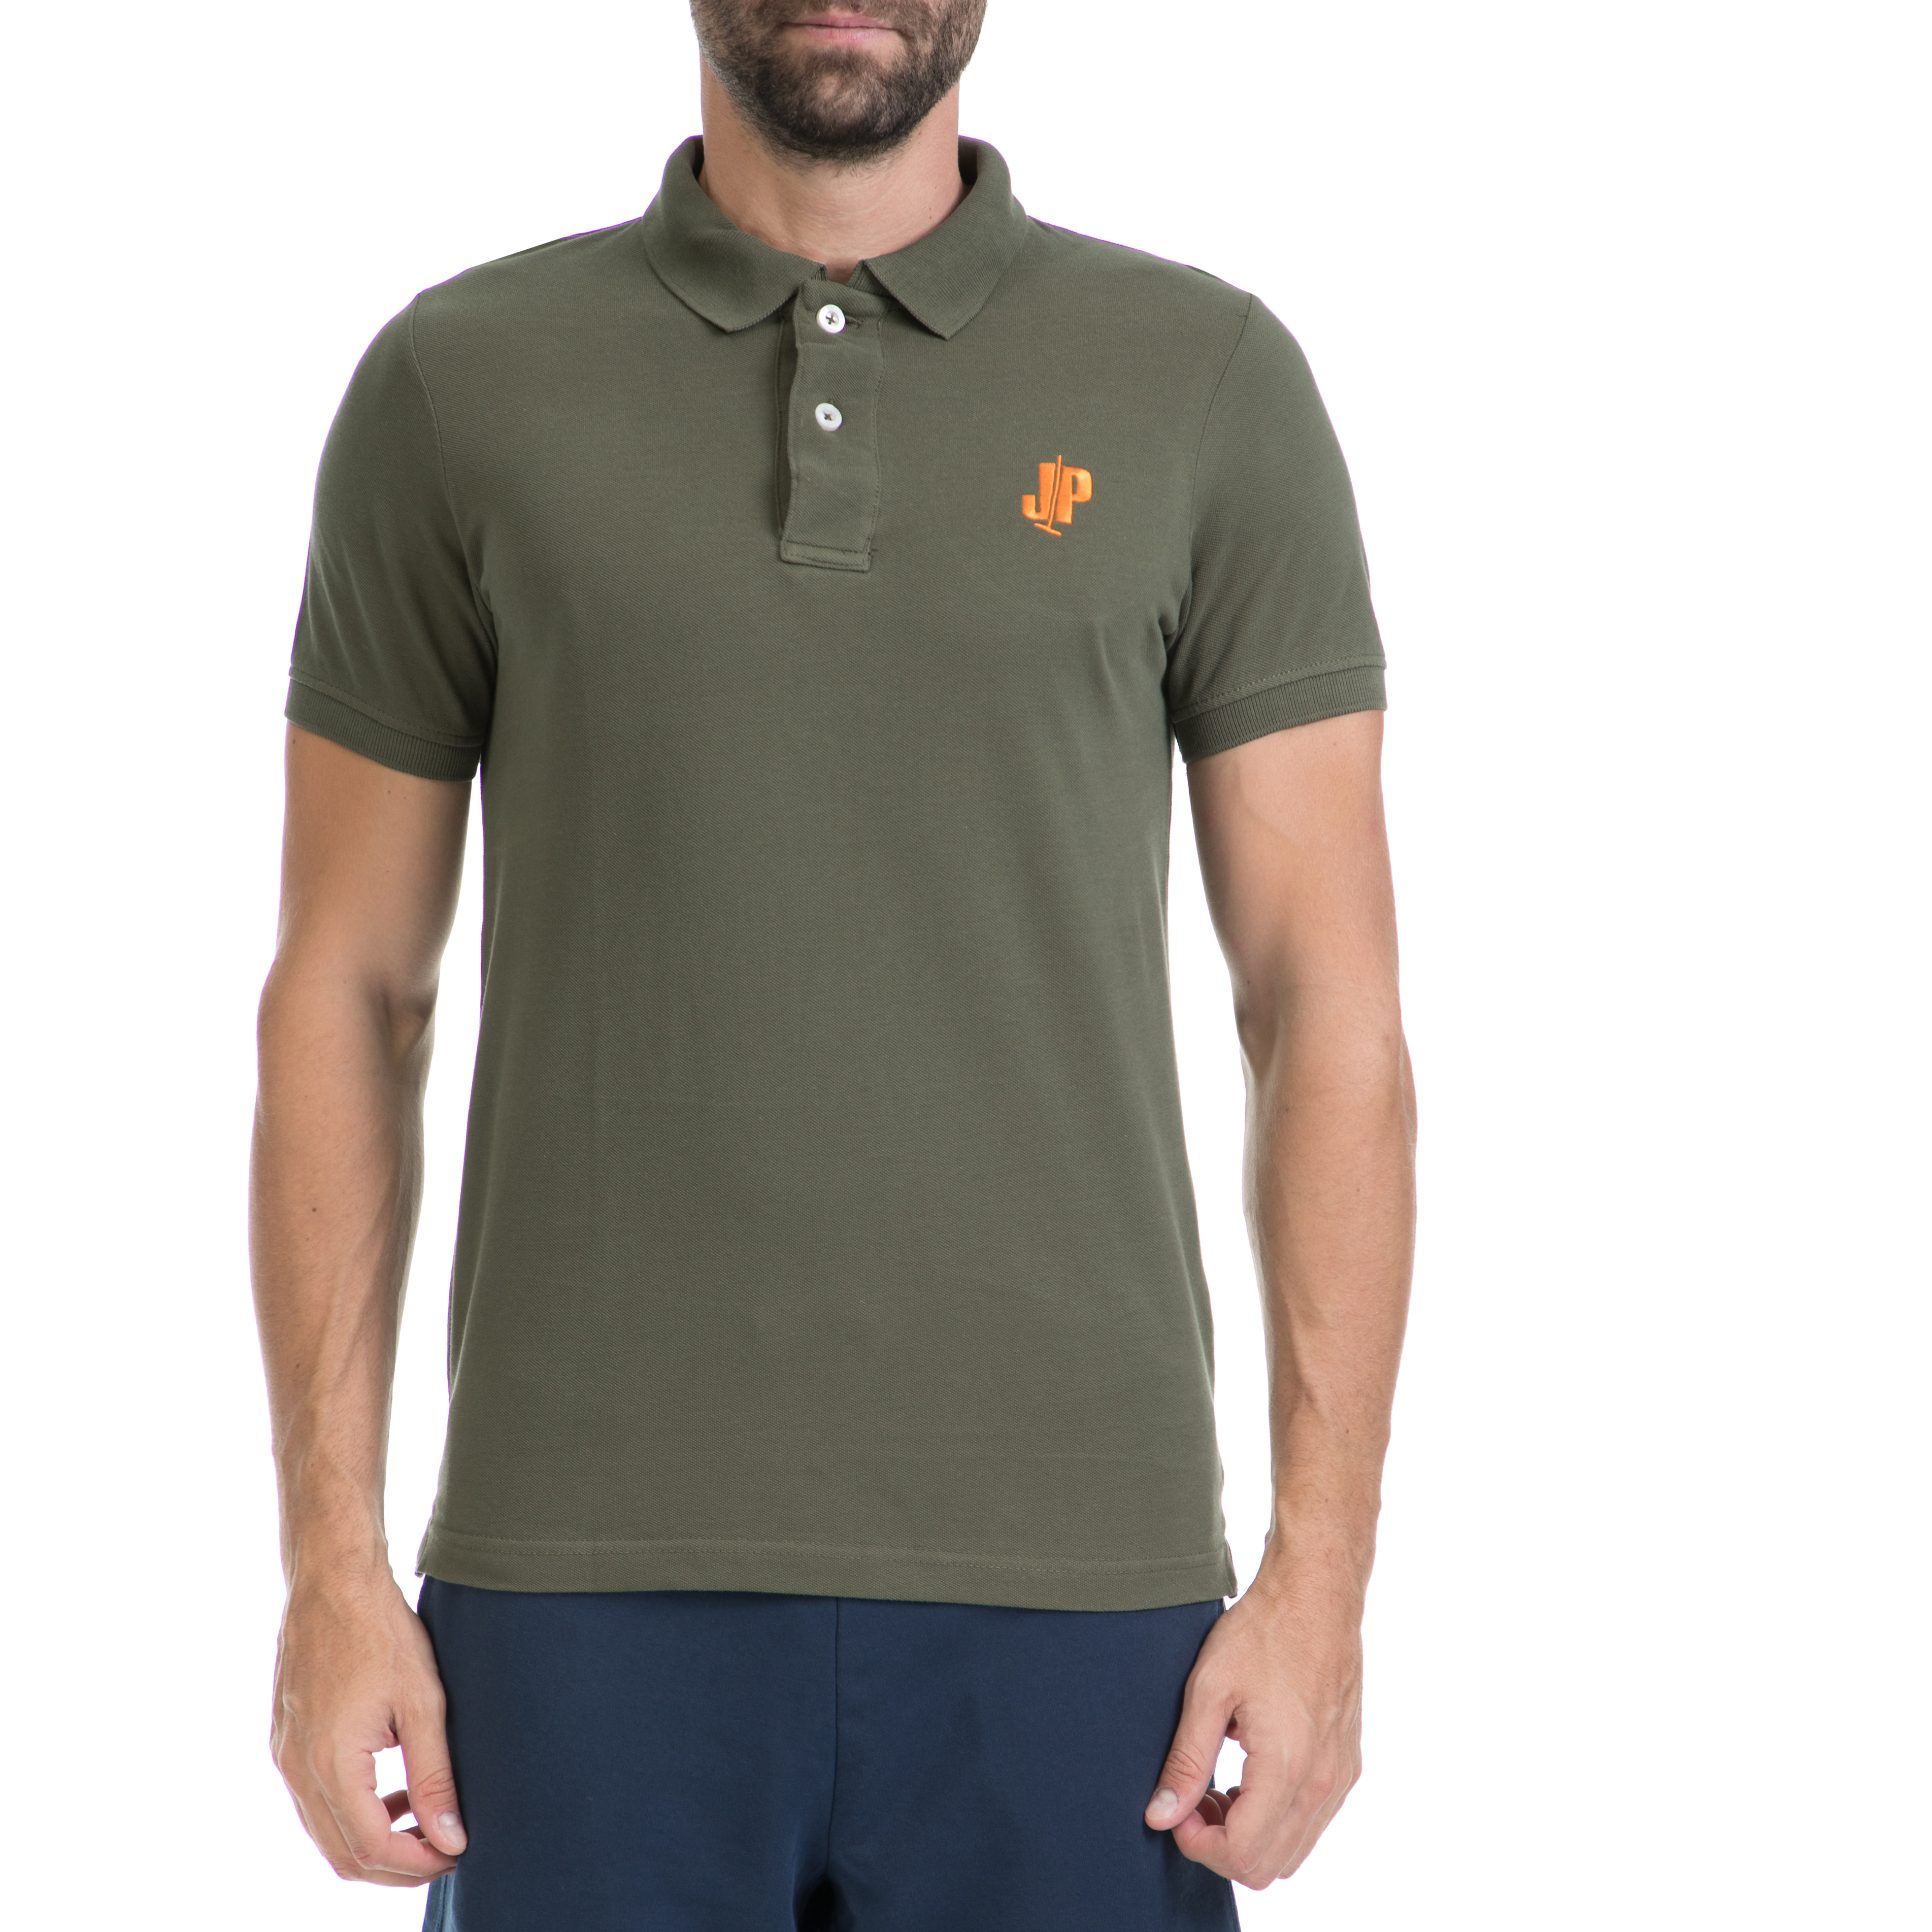 JUST POLO - Ανδρική μπλούζα Just Polo χακί 213d7ac2f94